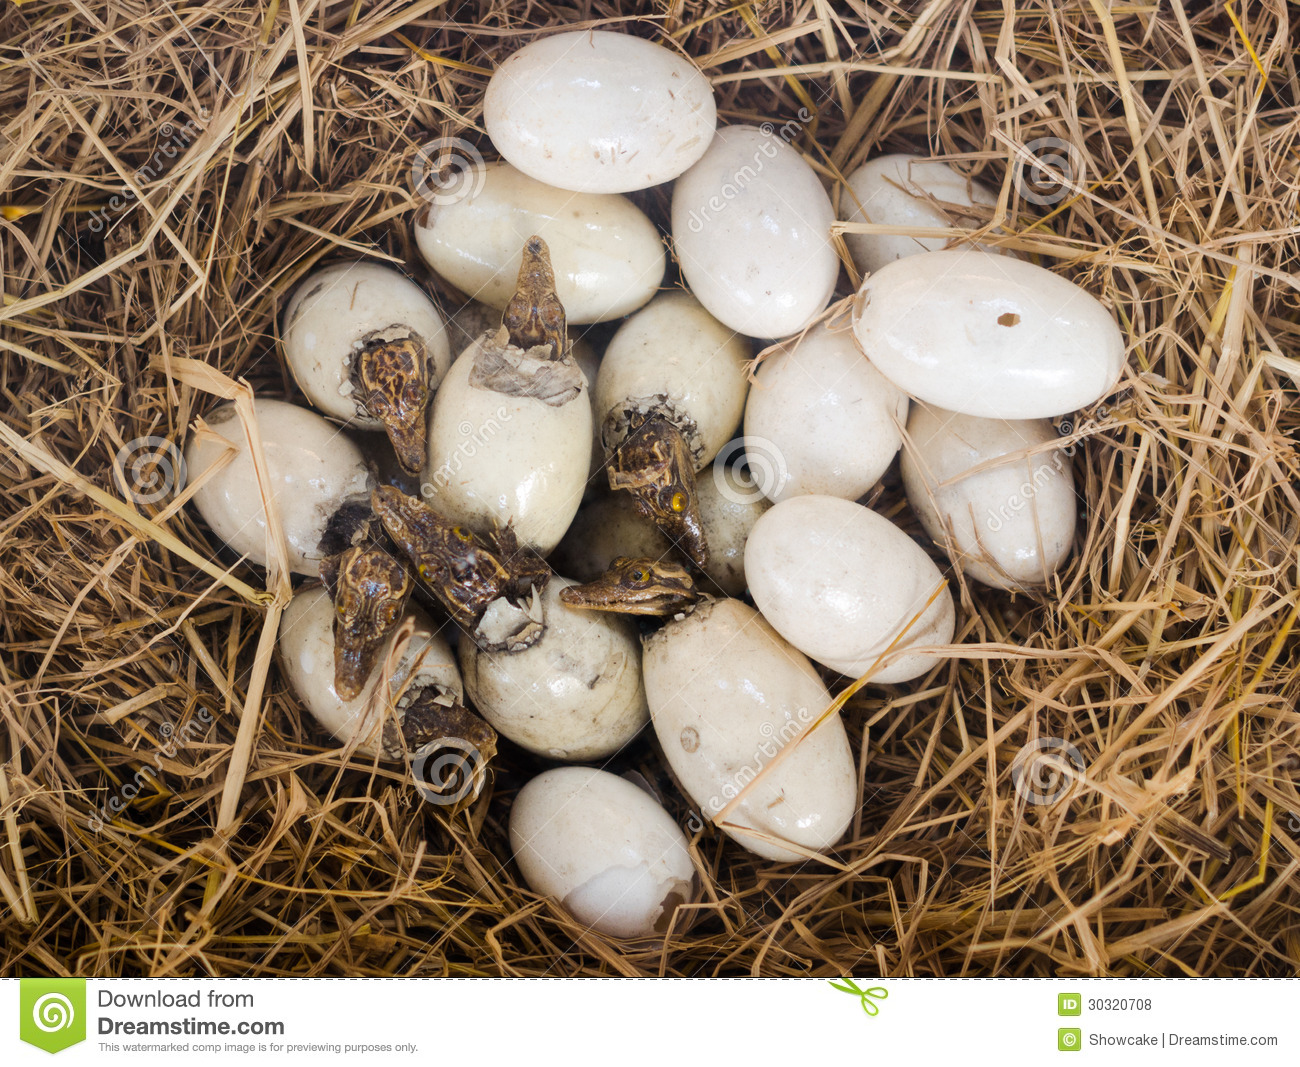 Little Baby Crocodiles Are Hatching From Eggs. Stock Photo